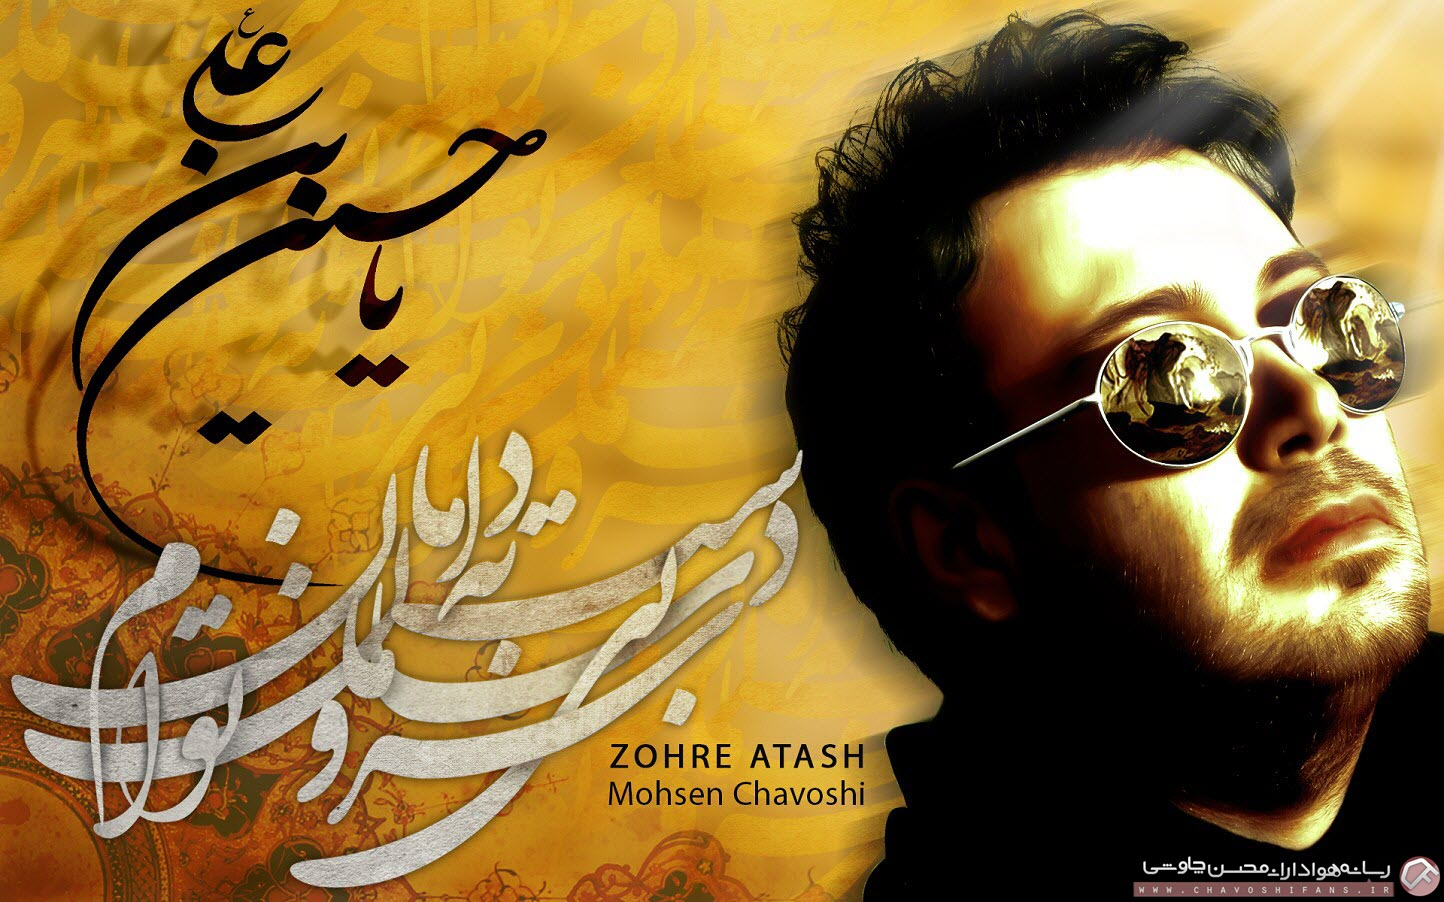 http://www.chavoshifans.ir/wp-content/uploads/2015/10/Zohre_Atash1.jpg